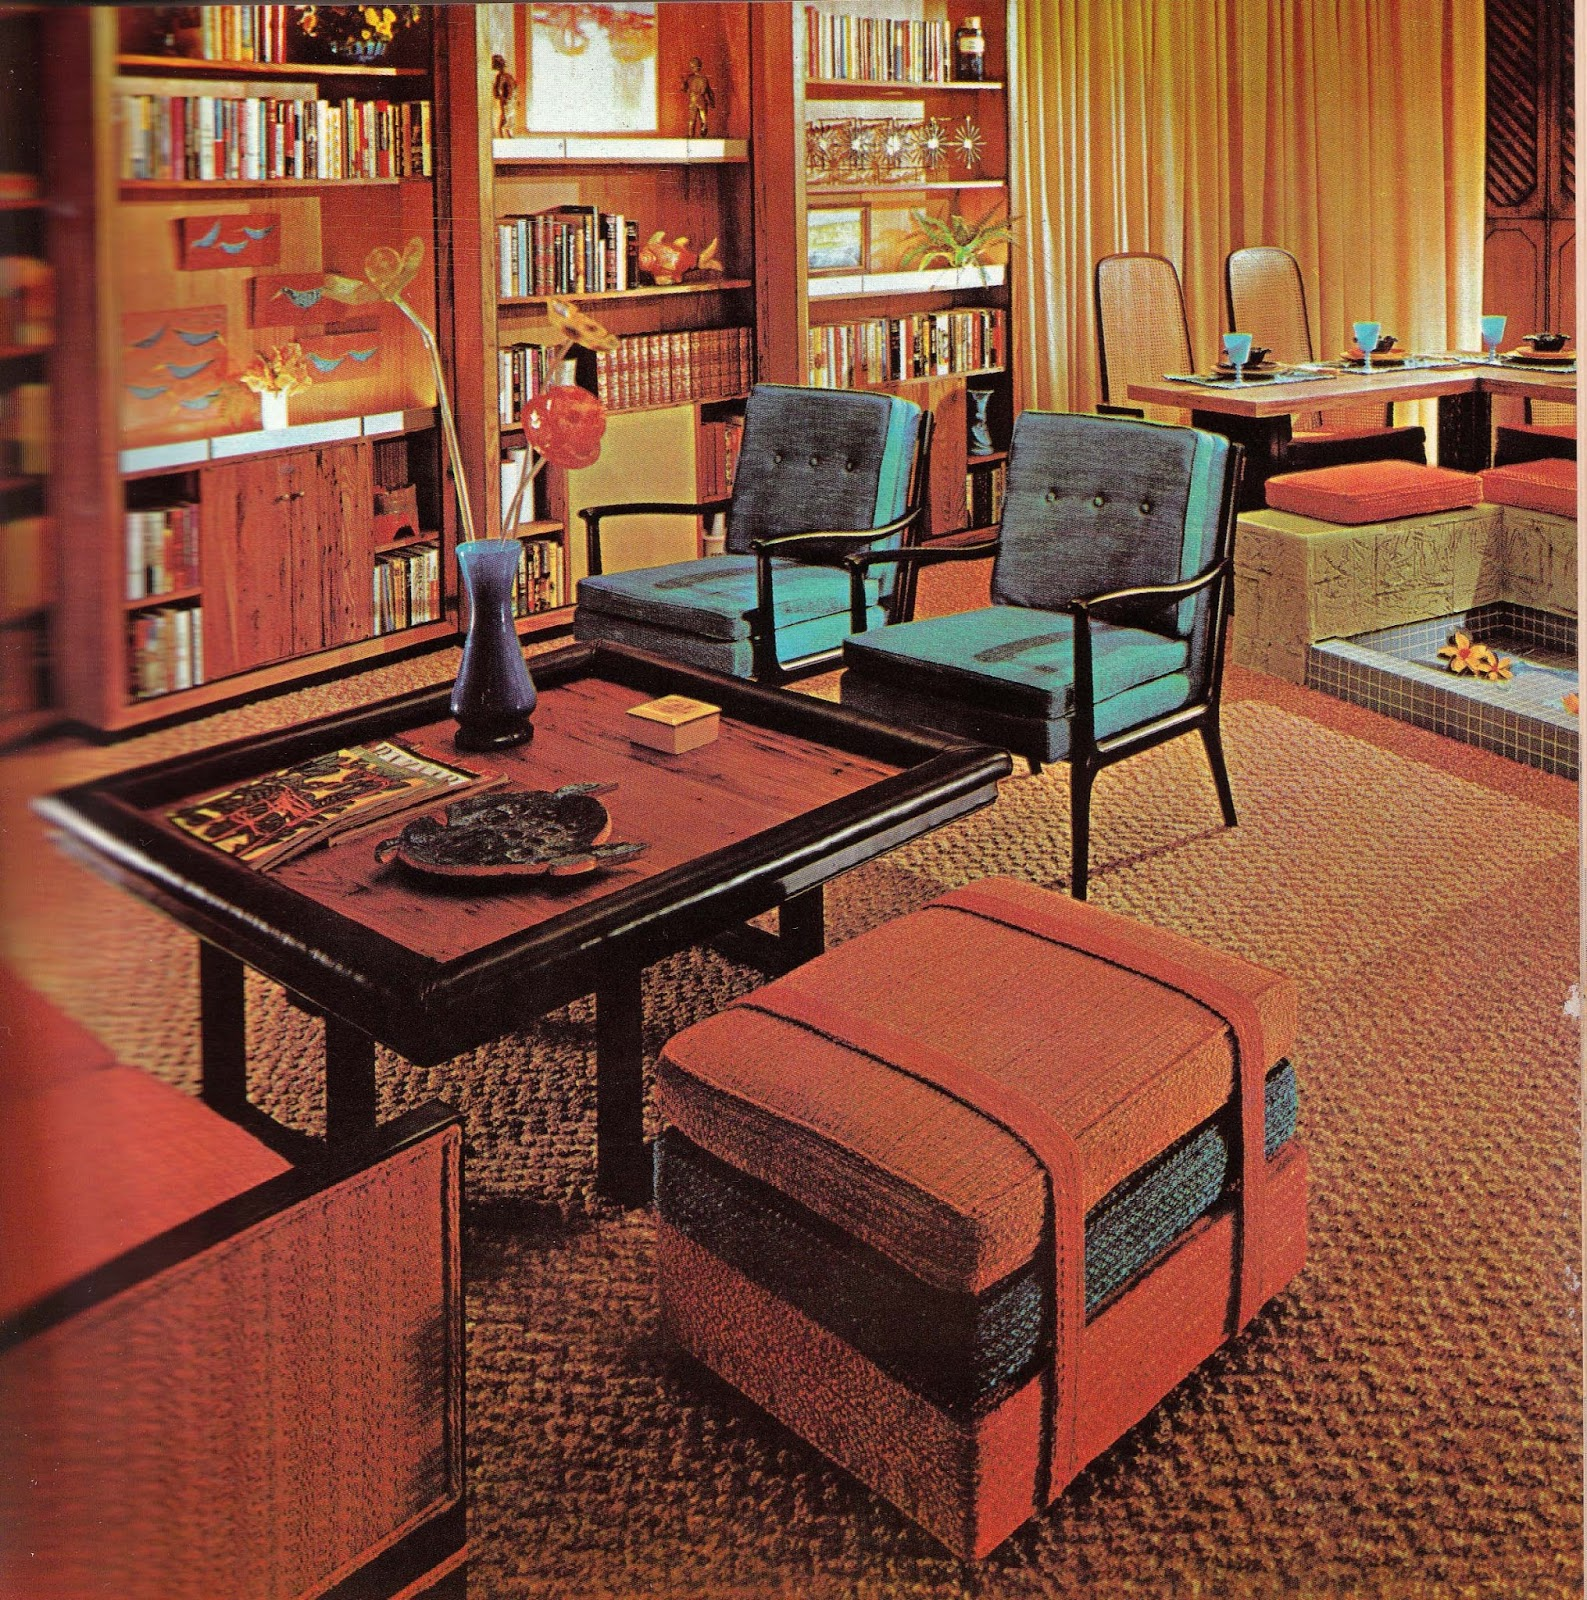 Home Design Classic Ideas: 1960s Interior D Cor: The Decade Of Psychedelia Gave Rise